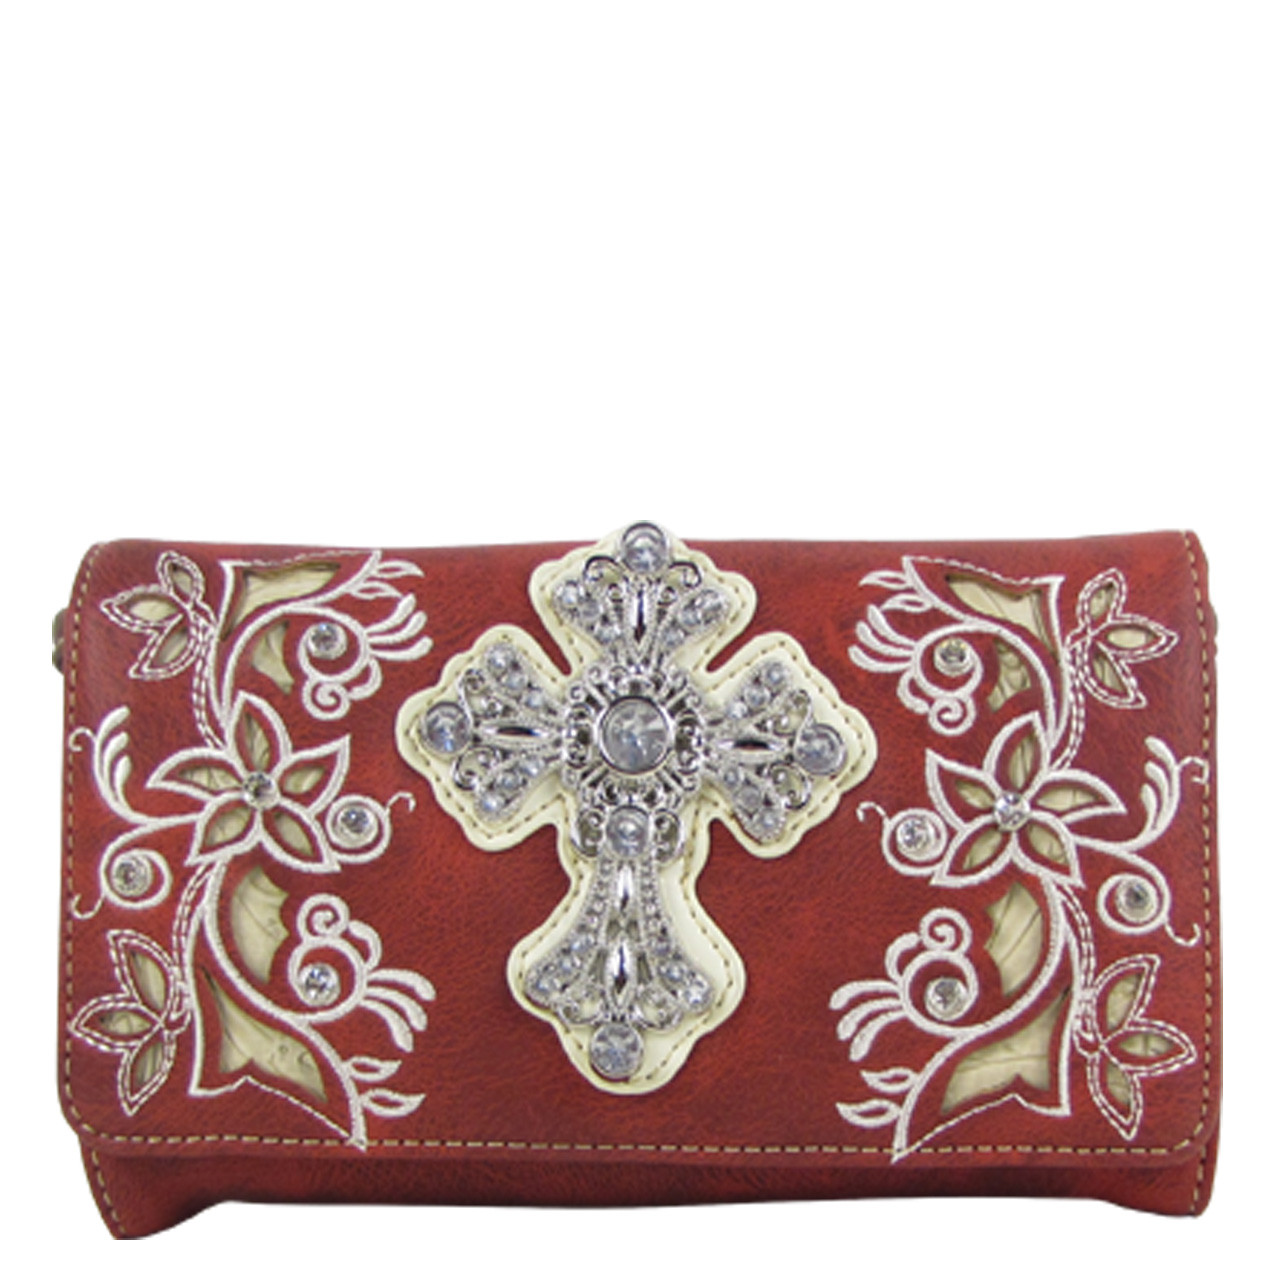 RED RHINESTONE FLOWER CROSS LOOK CLUTCH TRIFOLD WALLET CW1-0471RED